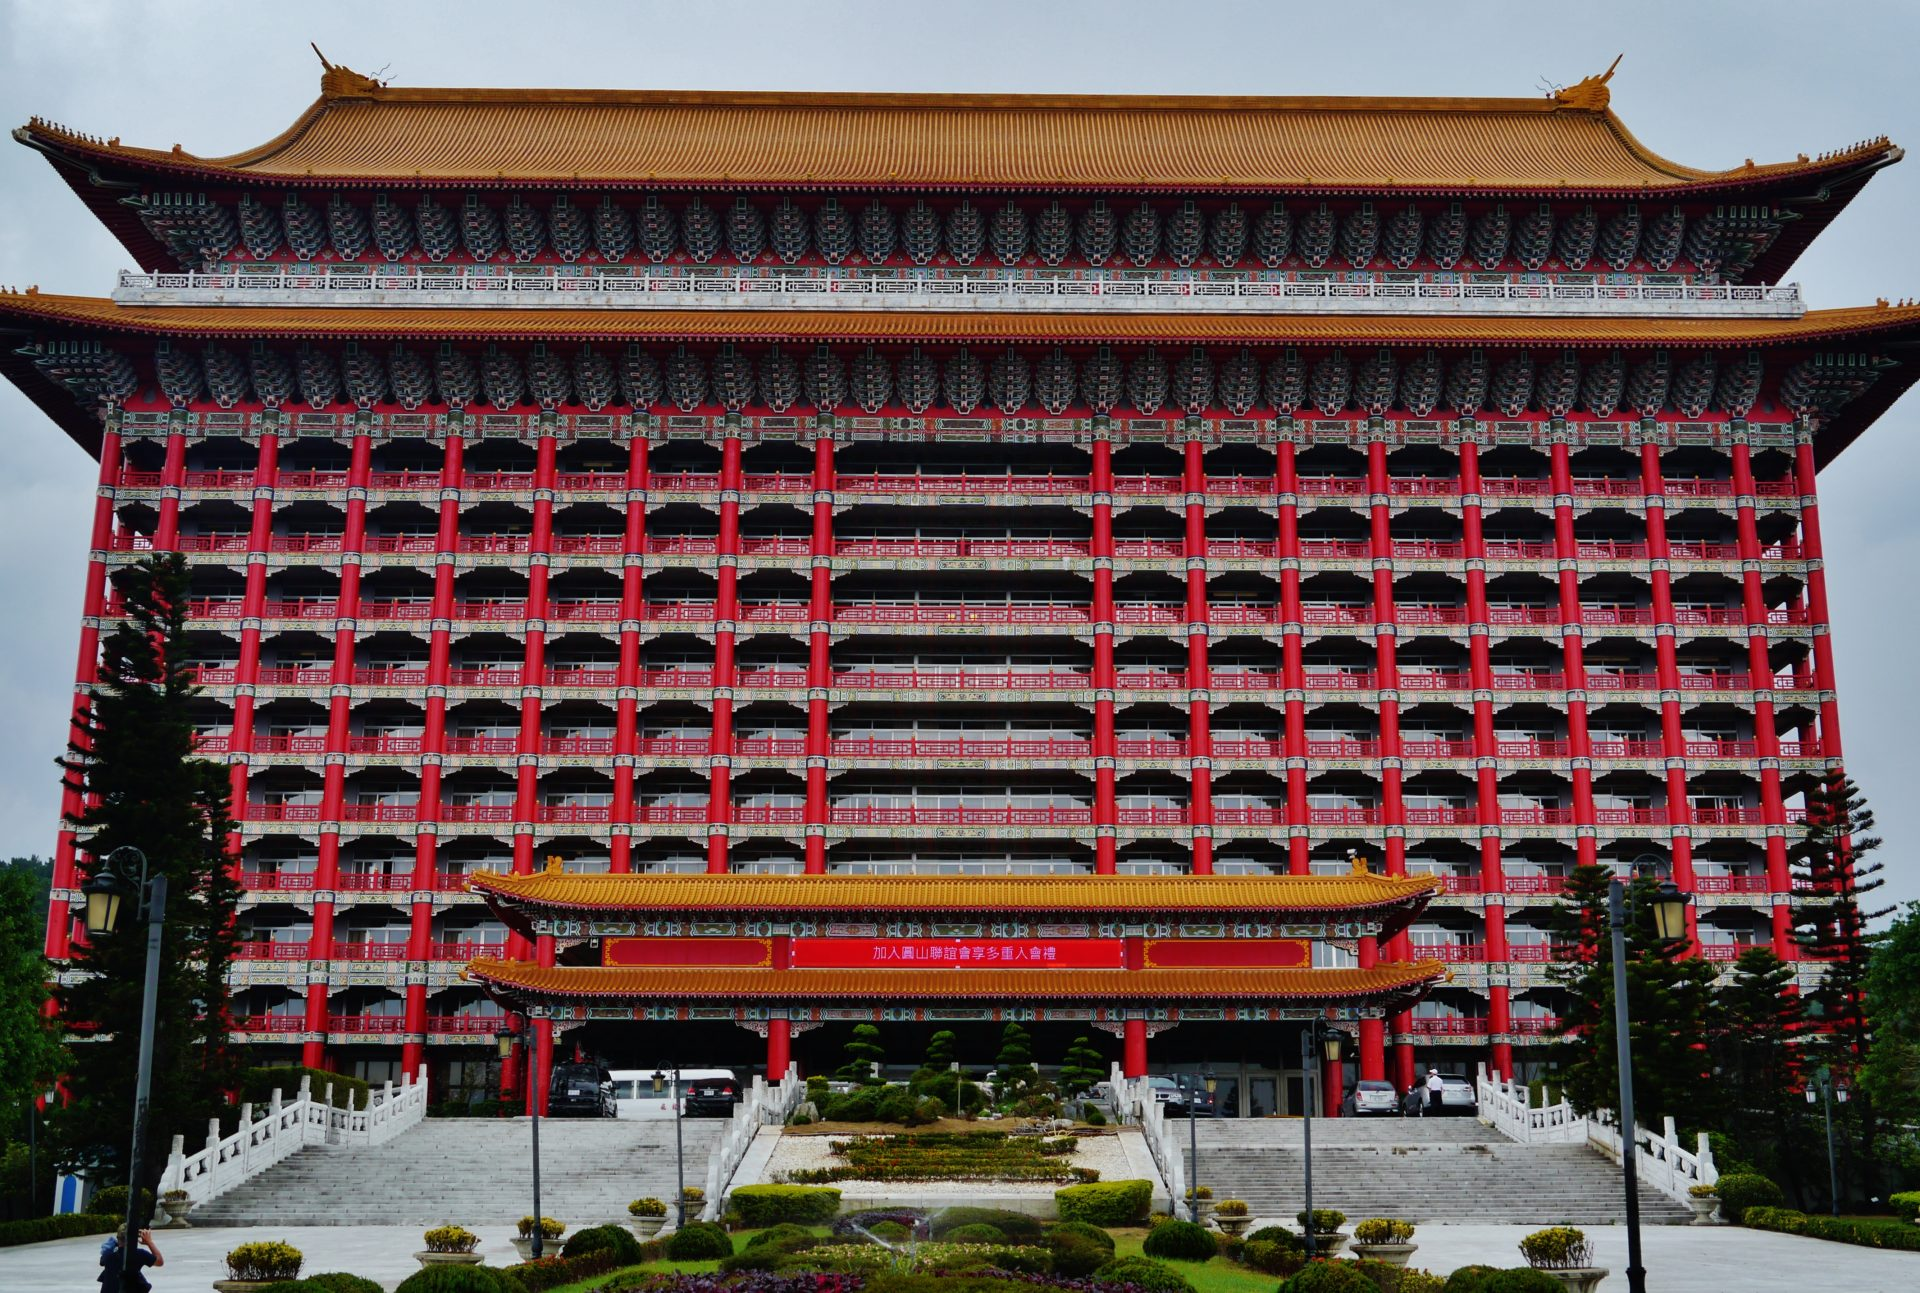 The Grand Hotel in Taipei City, Taiwan. (Image: Commons.wikimedia.org)